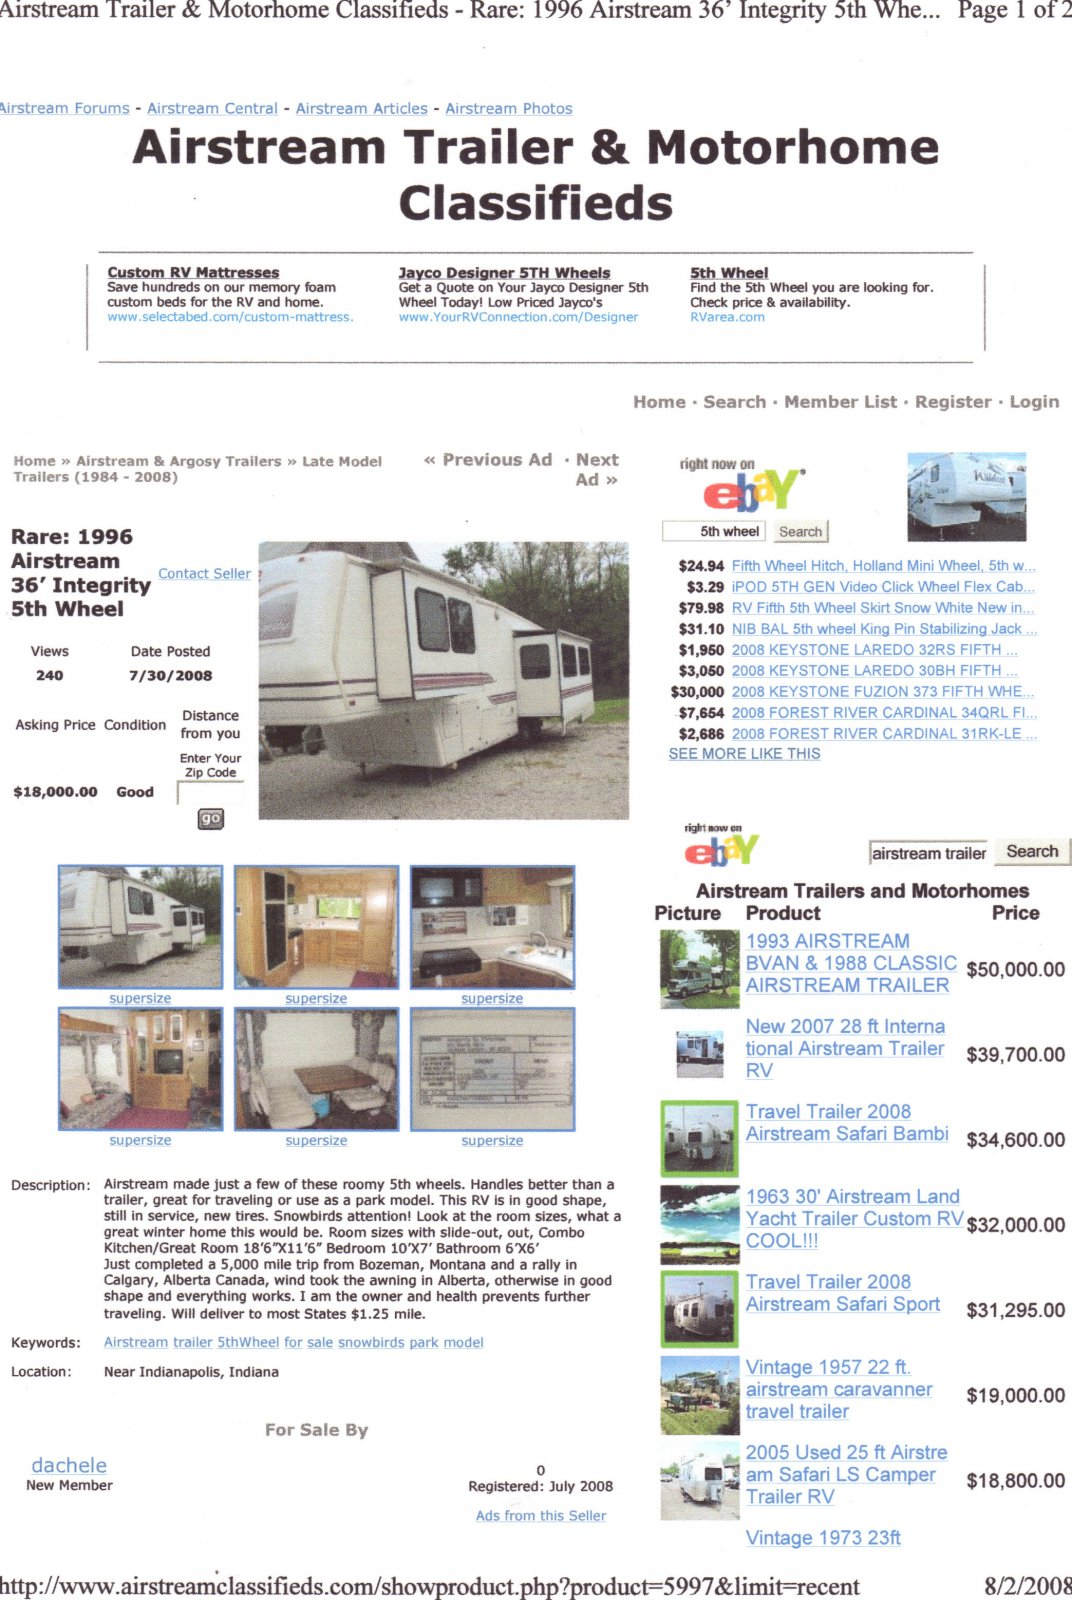 1996 Integrity 5th wheel by Airstream - Airstream Forums